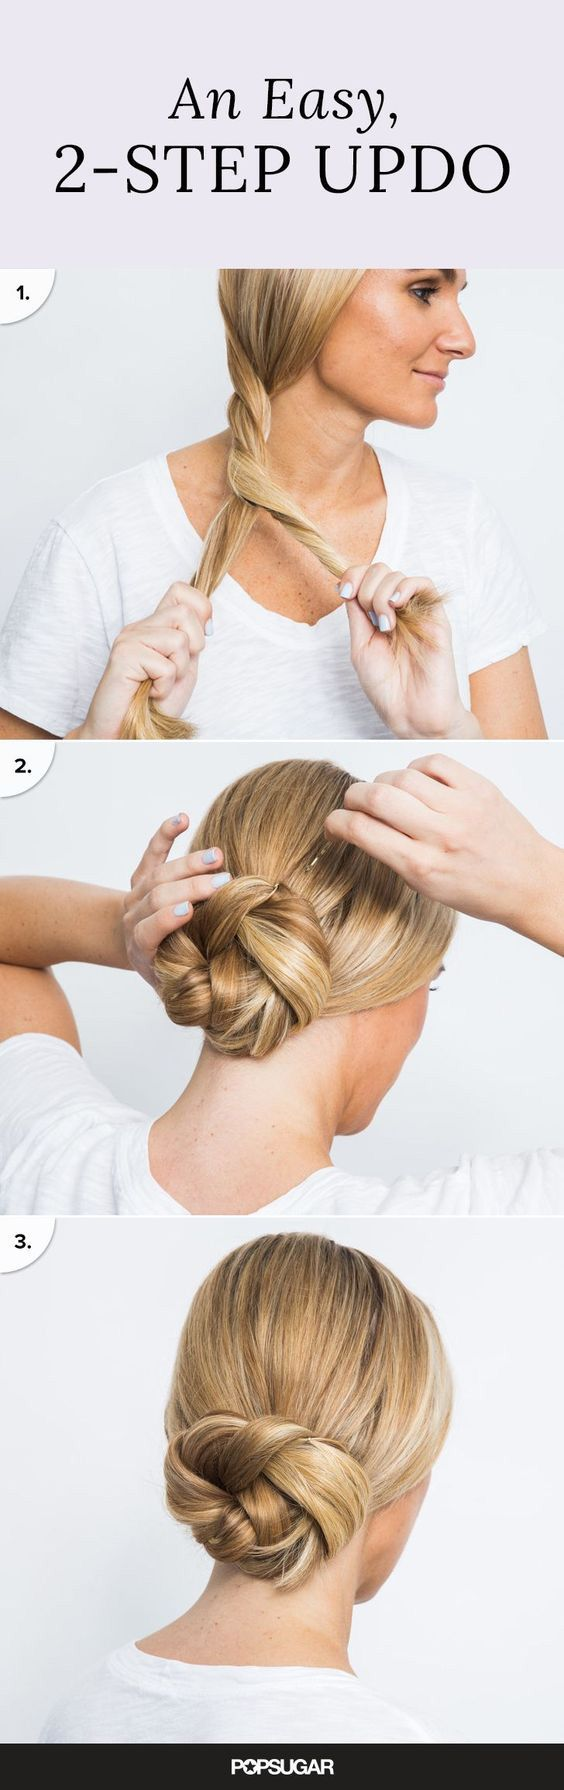 best hair images on pinterest hairstyle ideas hair dos and